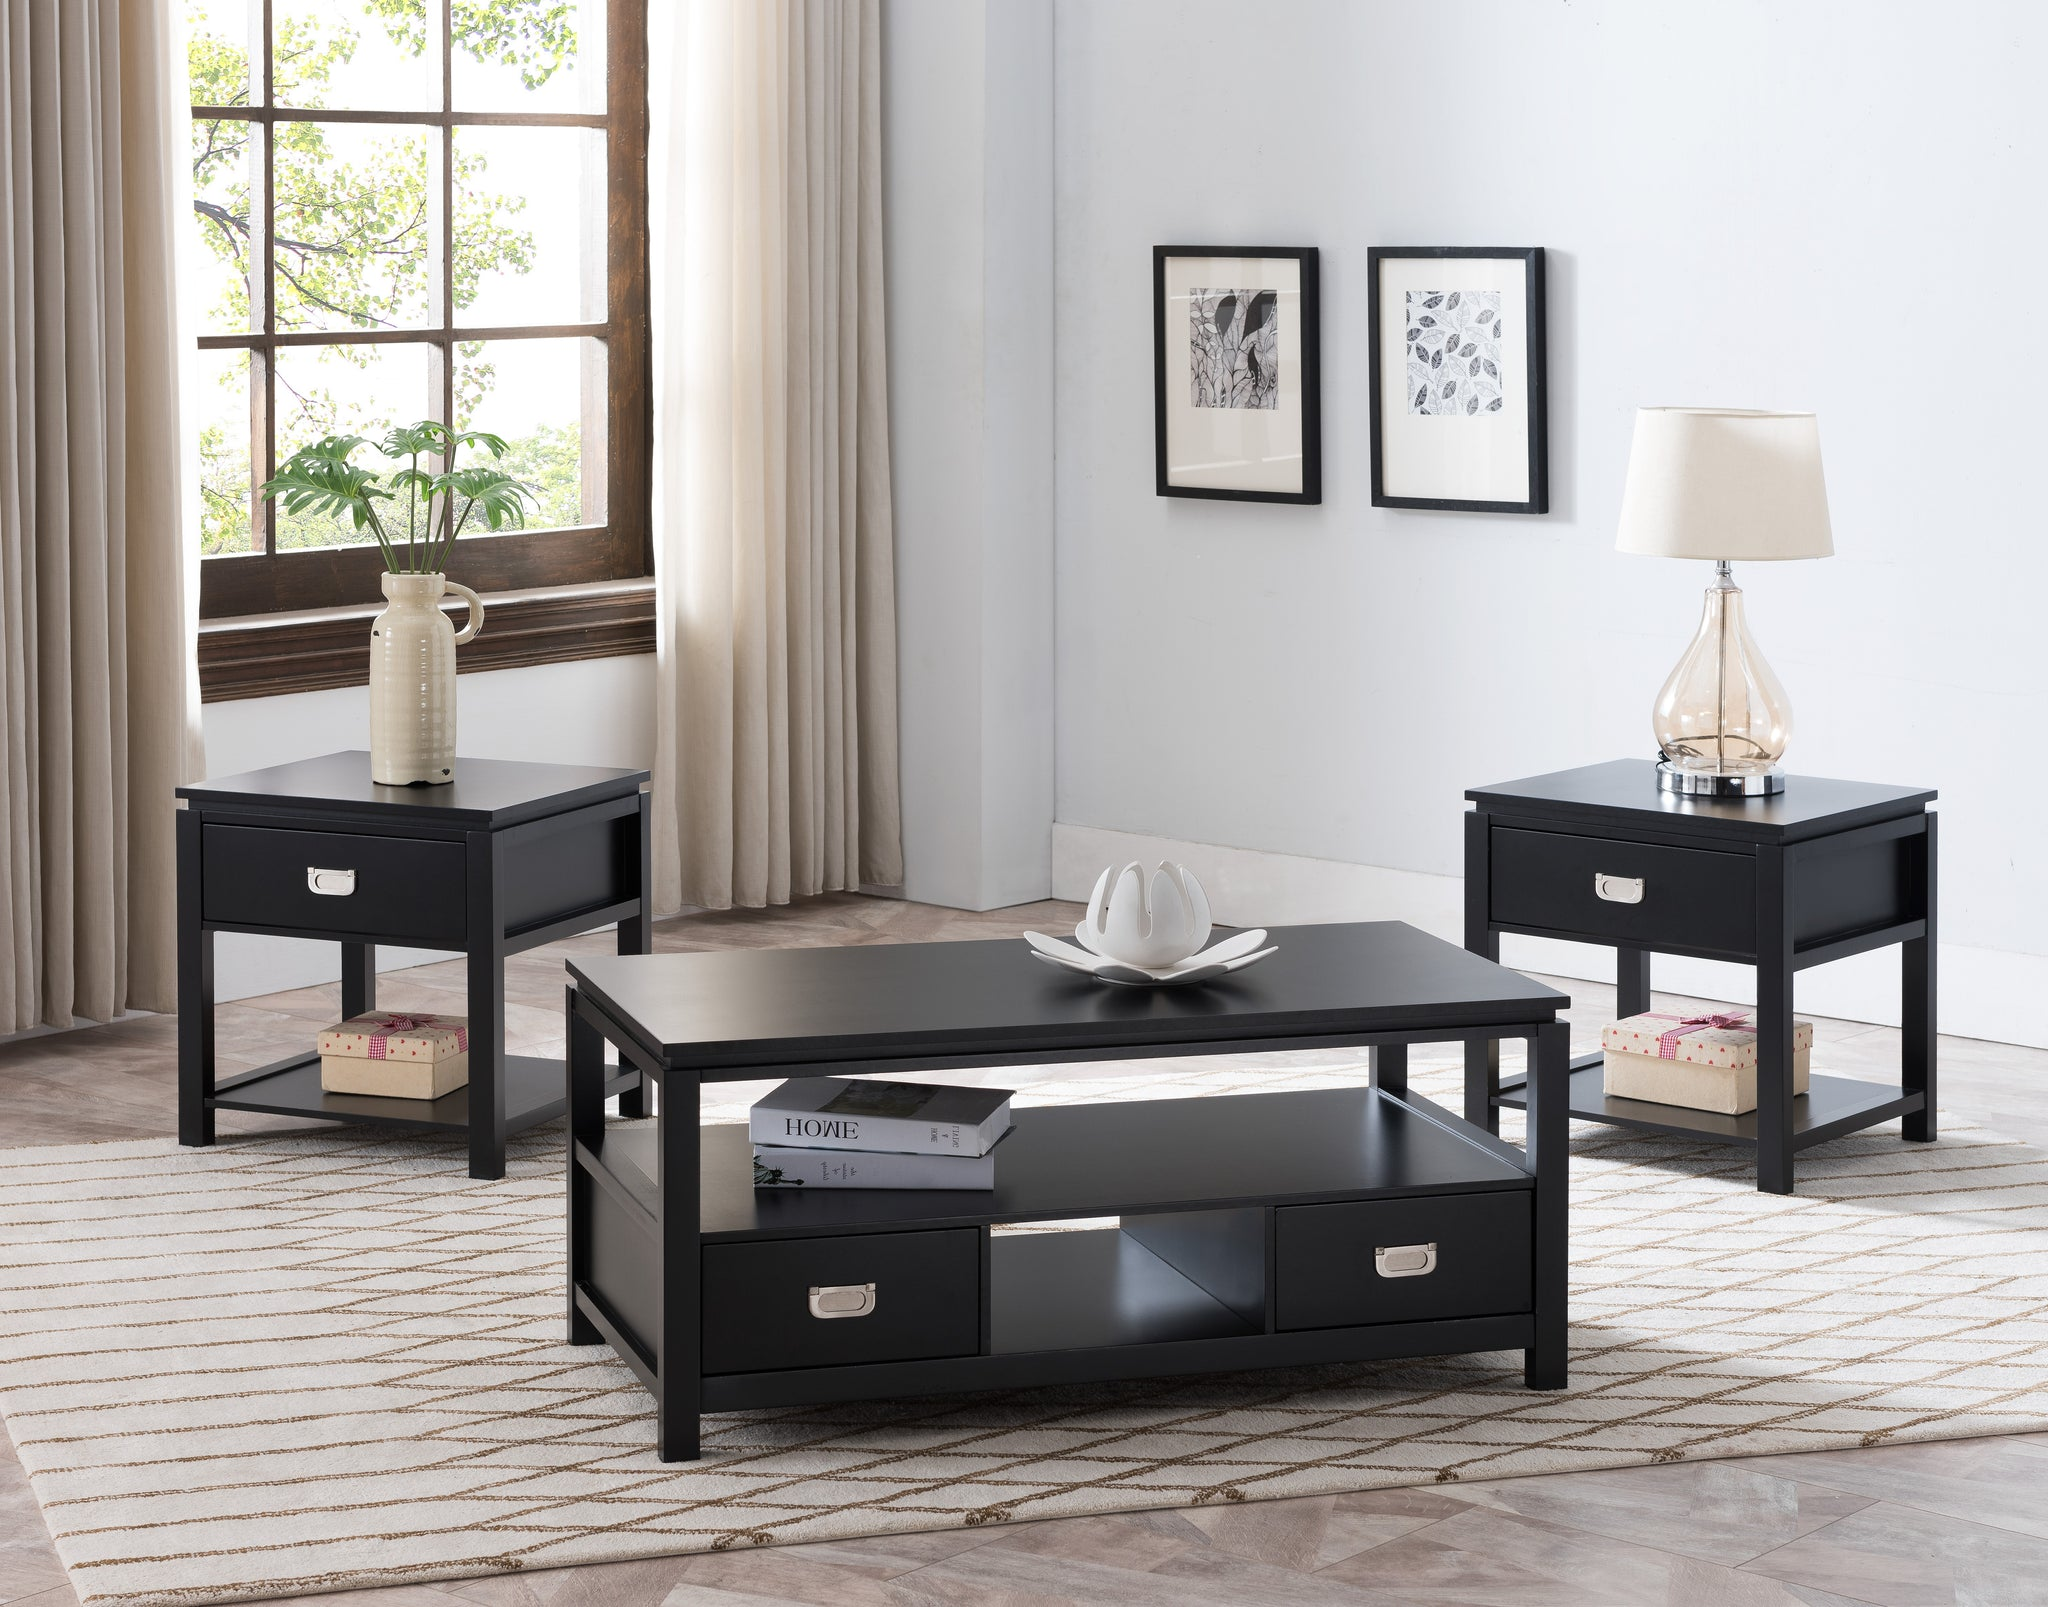 Adelaide 3 Piece Storage Coffee Table Set Black Wood With